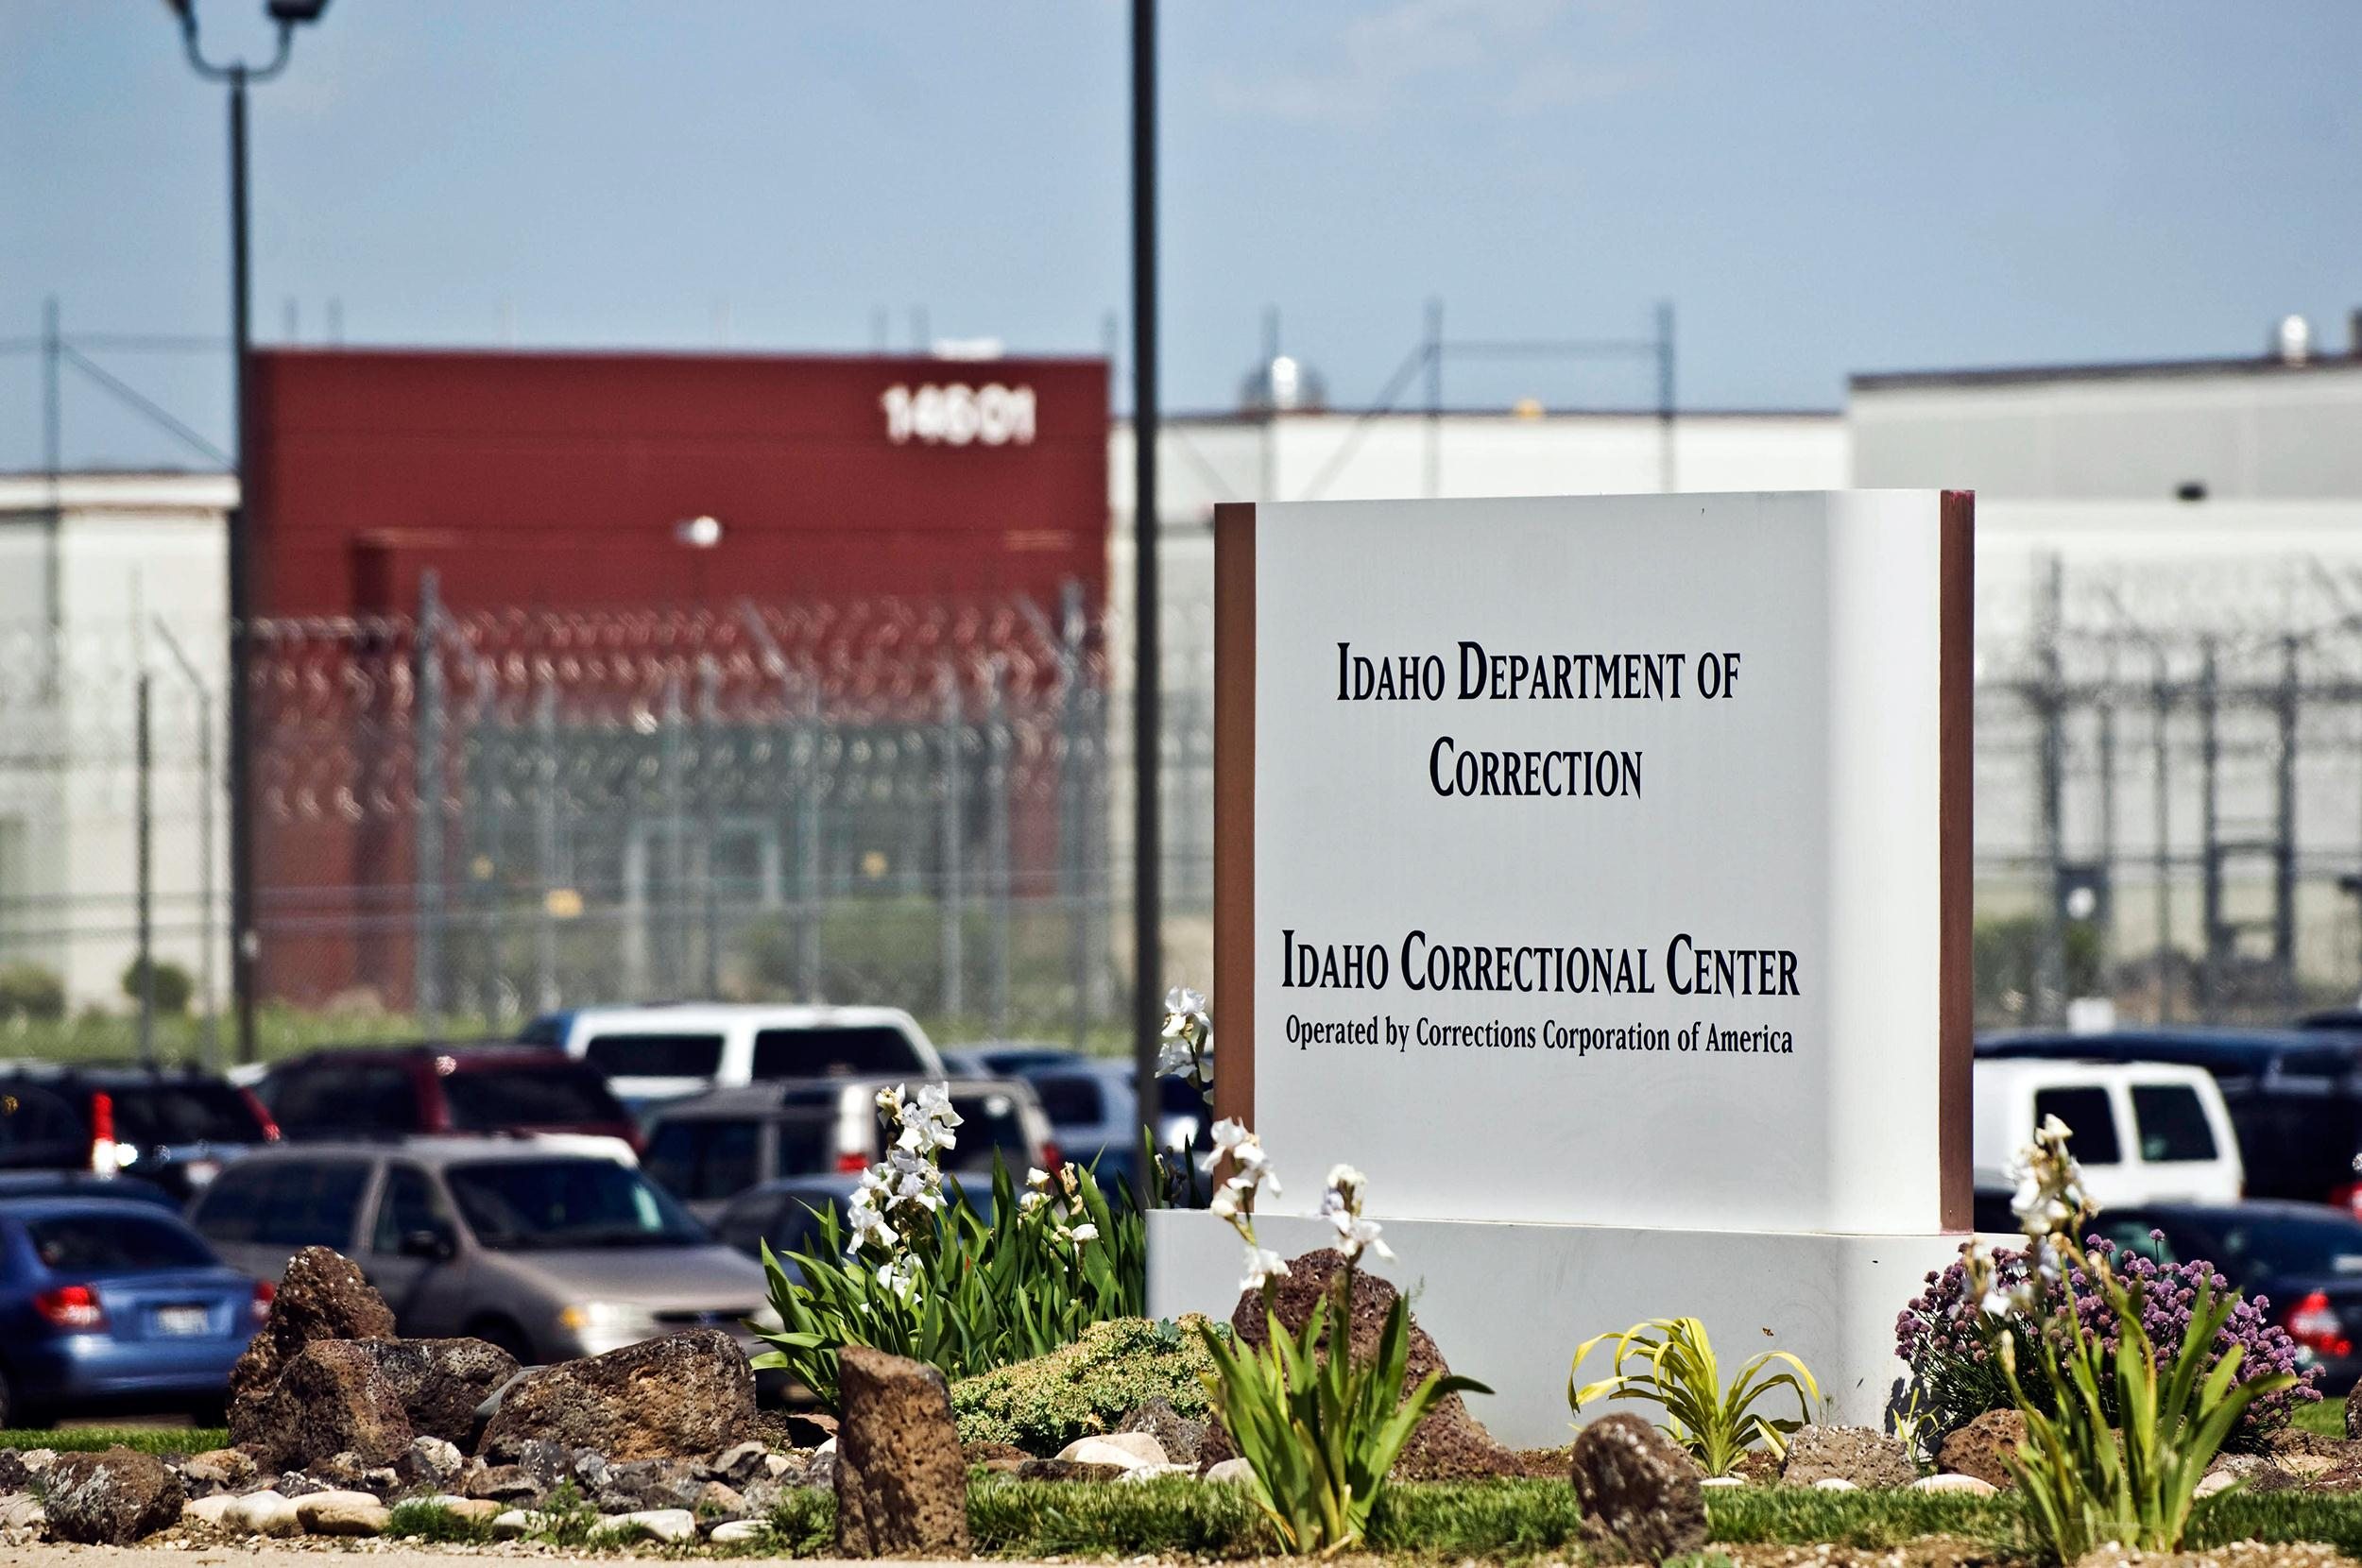 Image: The Idaho Correctional Center south of Boise, Idaho